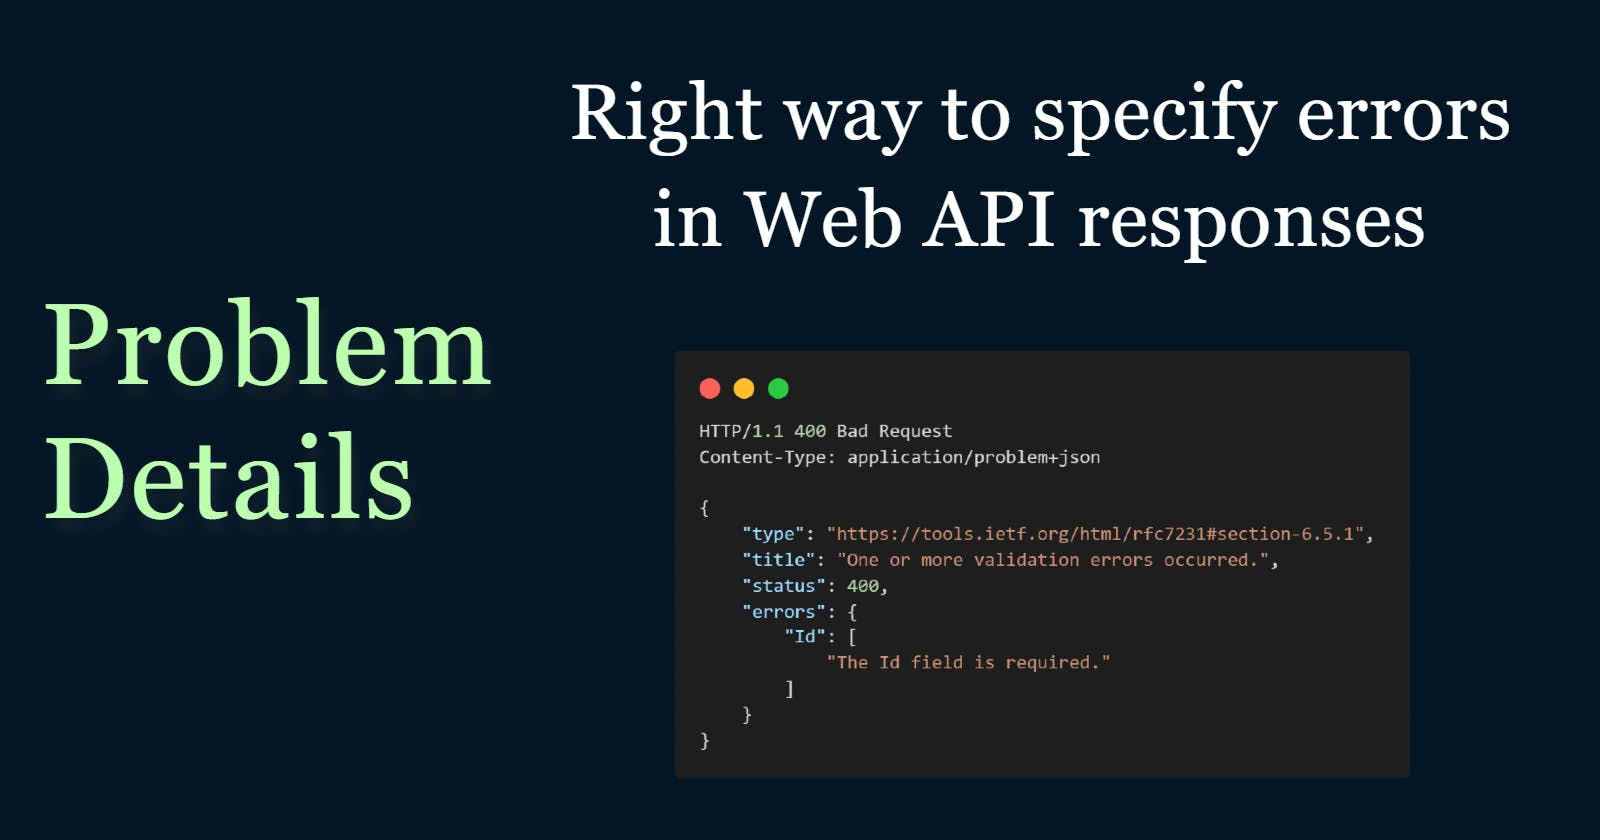 Problem Details - The right way to specify errors in Web API responses